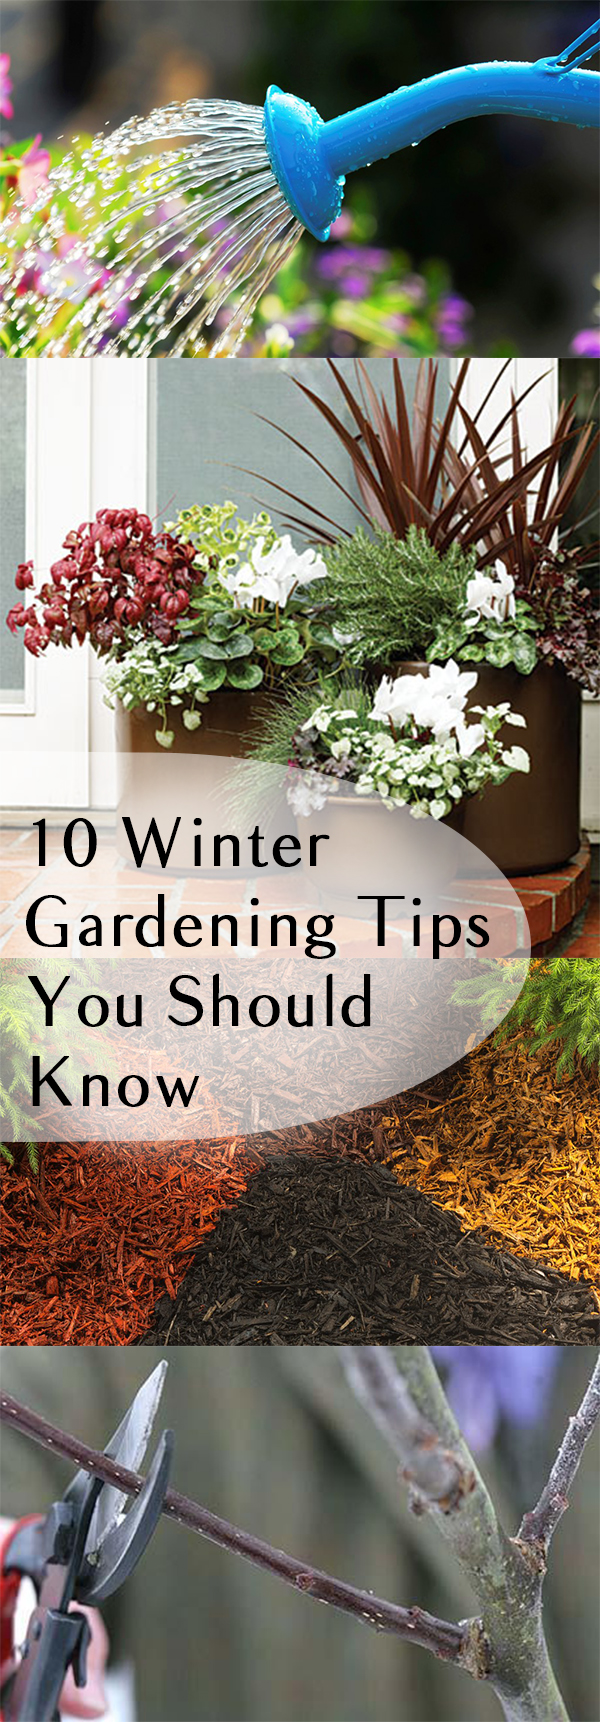 10 Winter Gardening Tips You Should Know| Winter Gardening, Winter Gardening Tips, Winter Gardening Vegetables, Winter Gardening Tips, Winter Gardening Outdoor, Winter Gardening Indoors, Garden Ideas, Gardening Ideas, Gardening Tips, Gardening for Beginners #WinterGardeningVegetables #WinterGardeningTips